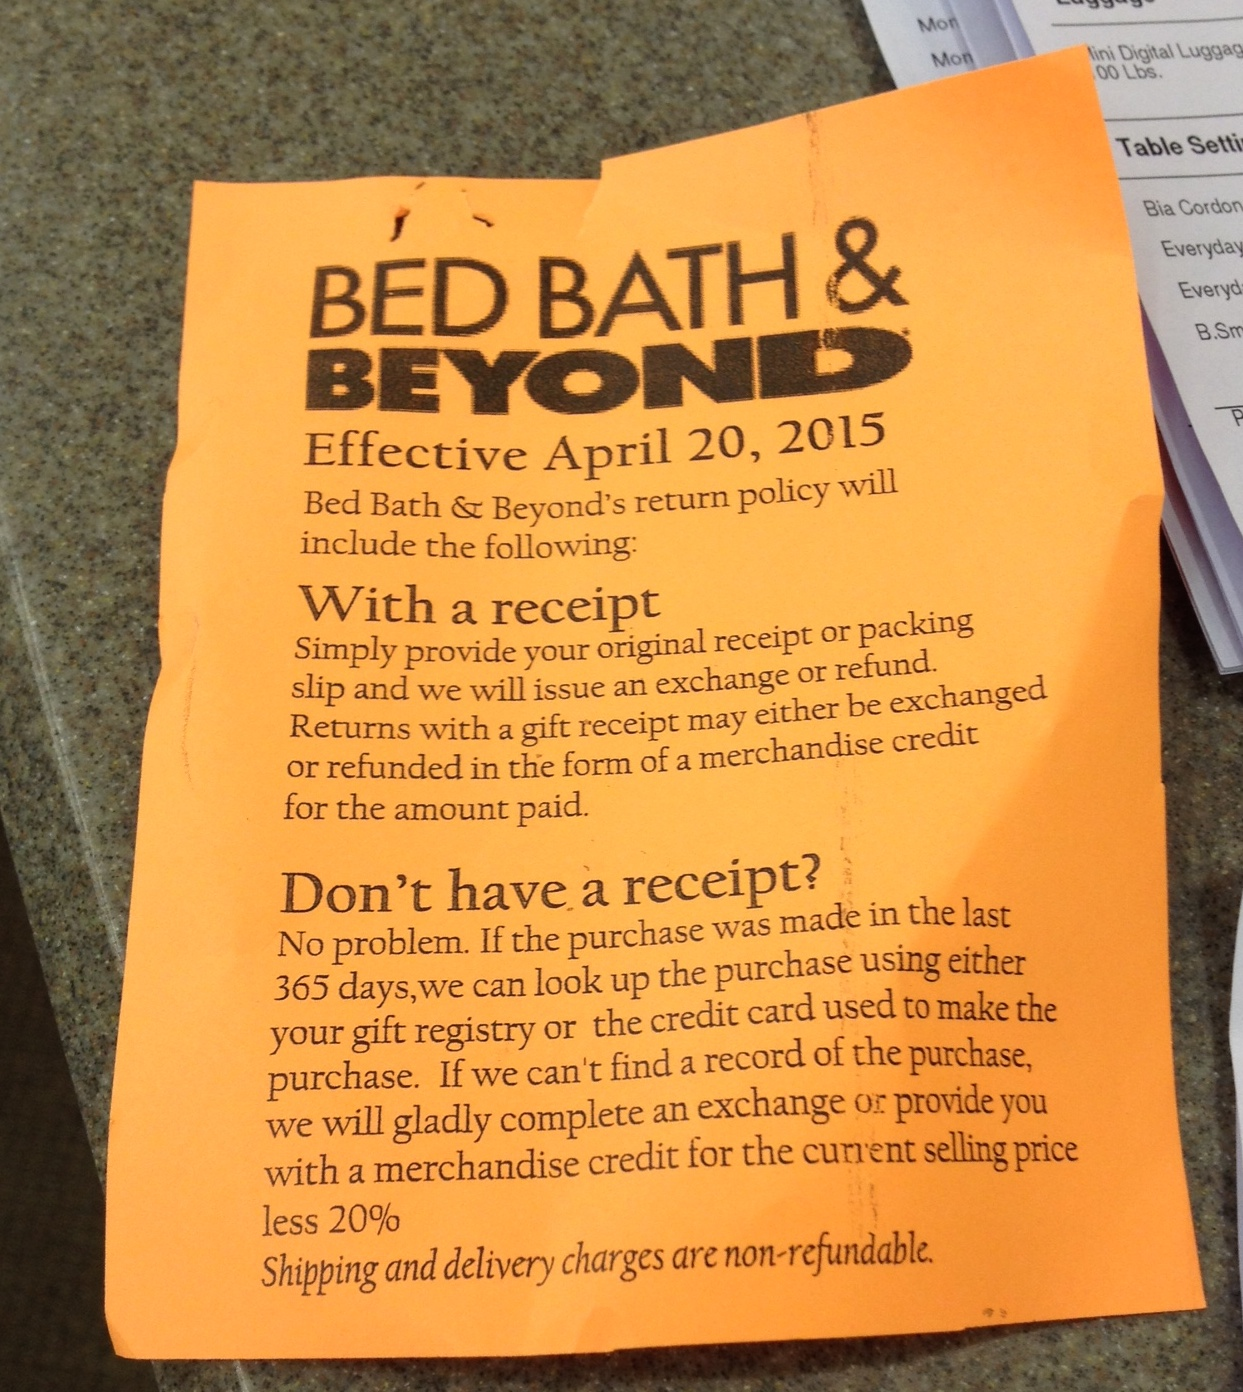 Return Policy Without Receipt At Bed Bath And Beyond